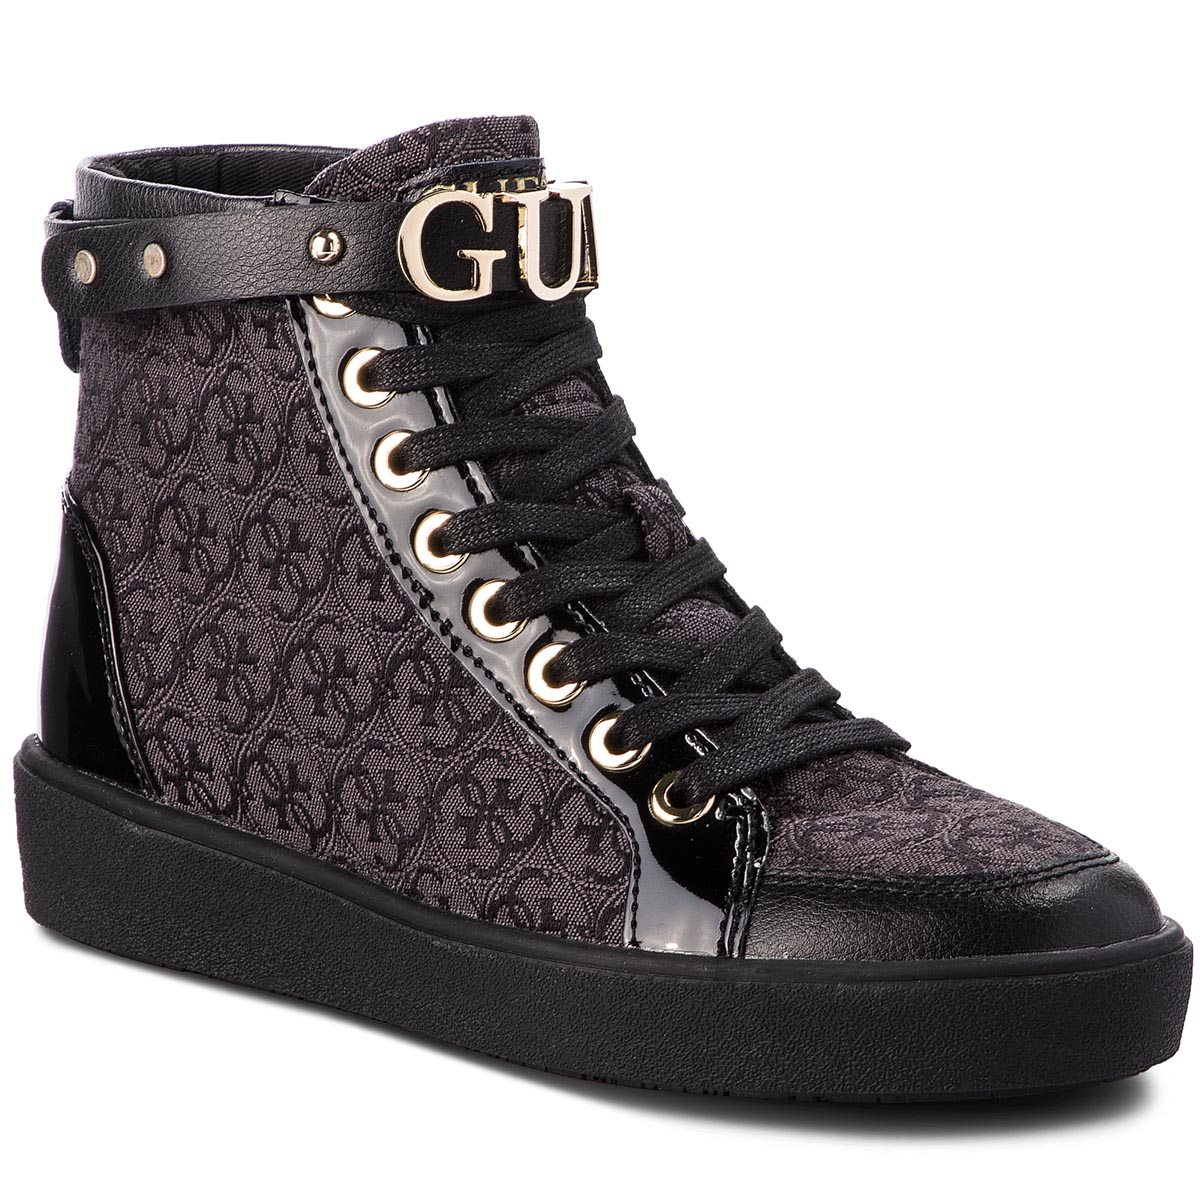 Sneakers GUESS - FLGRC3 FAL12 BLKBL